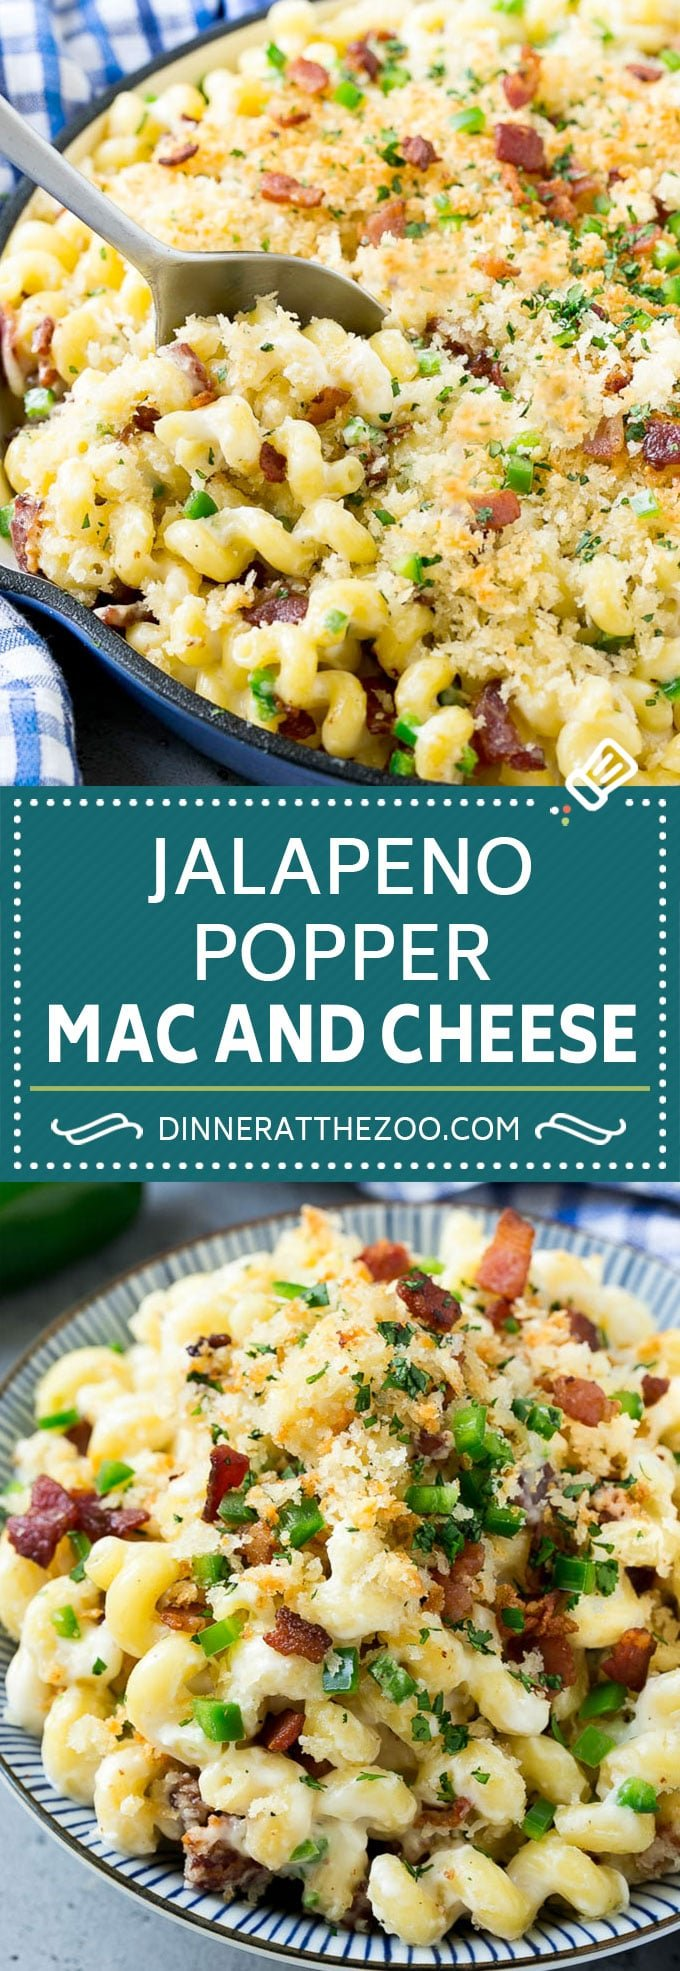 Jalapeno Popper Mac and Cheese Recipe | Bacon Macaroni and Cheese | Spicy Mac and Cheese | Jalapeno Mac and Cheese #jalapeno #bacon #pasta #macandcheese #dinner #dinneratthezoo #cheese